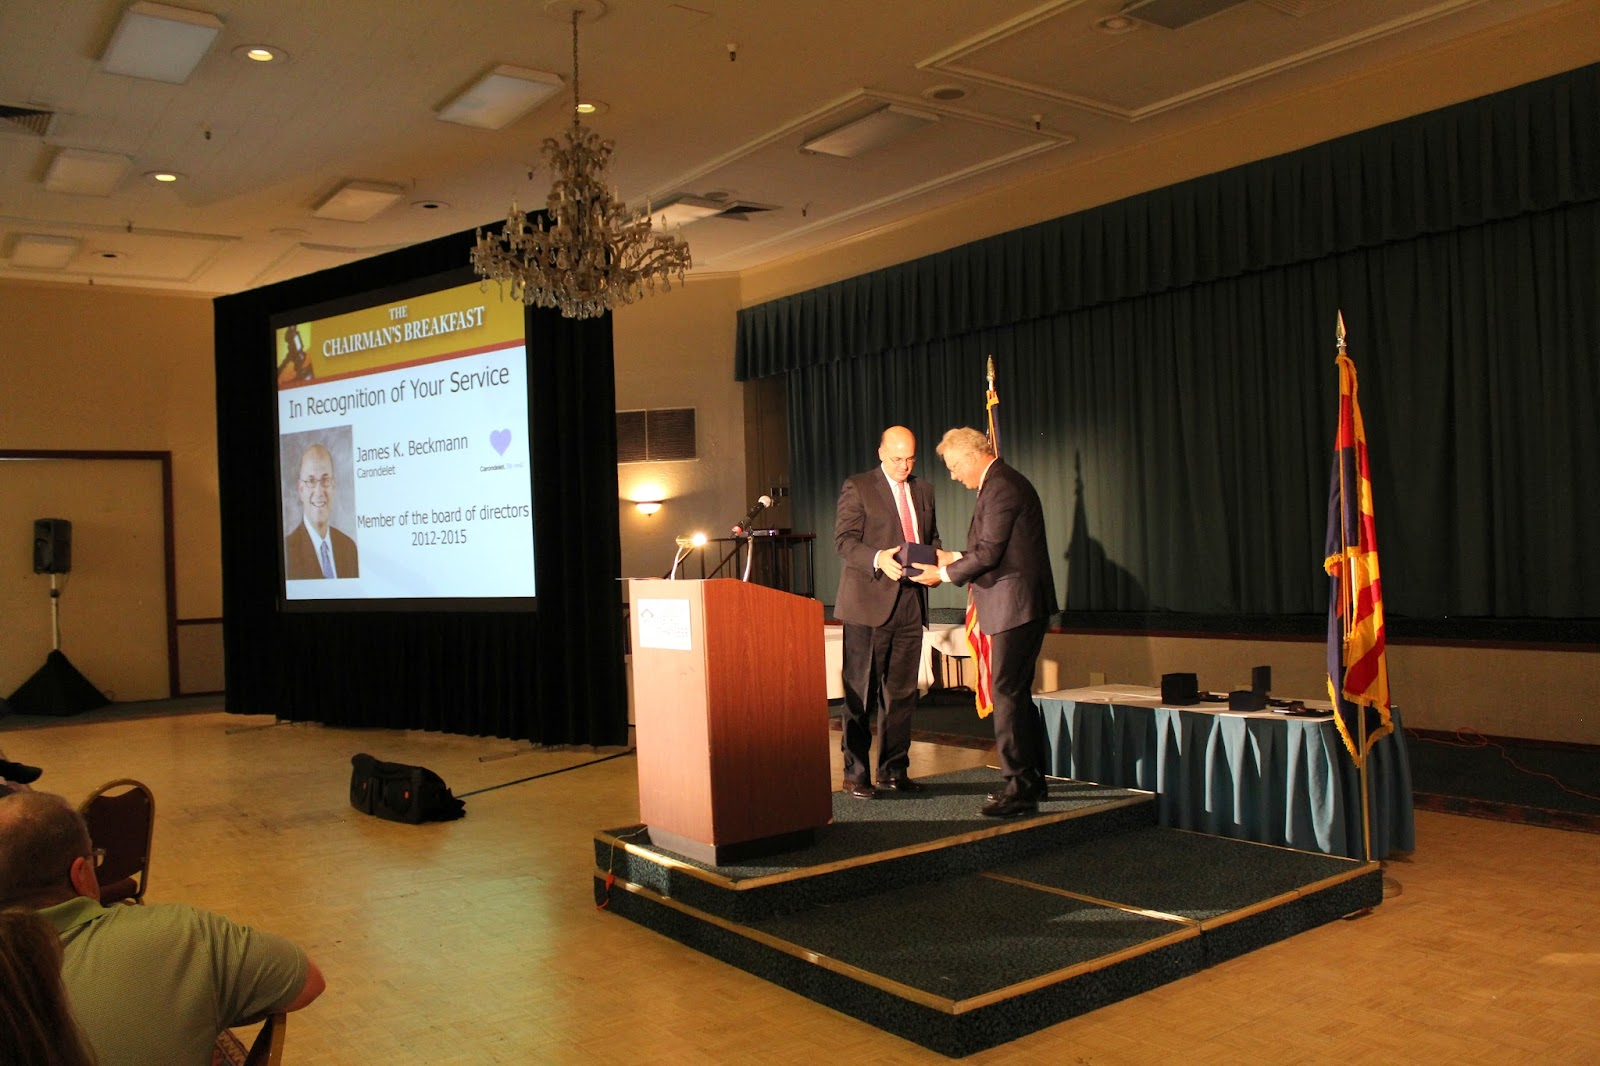 James Beckman, Carondelet Health Network accepting award for his service on the Board of Directors.